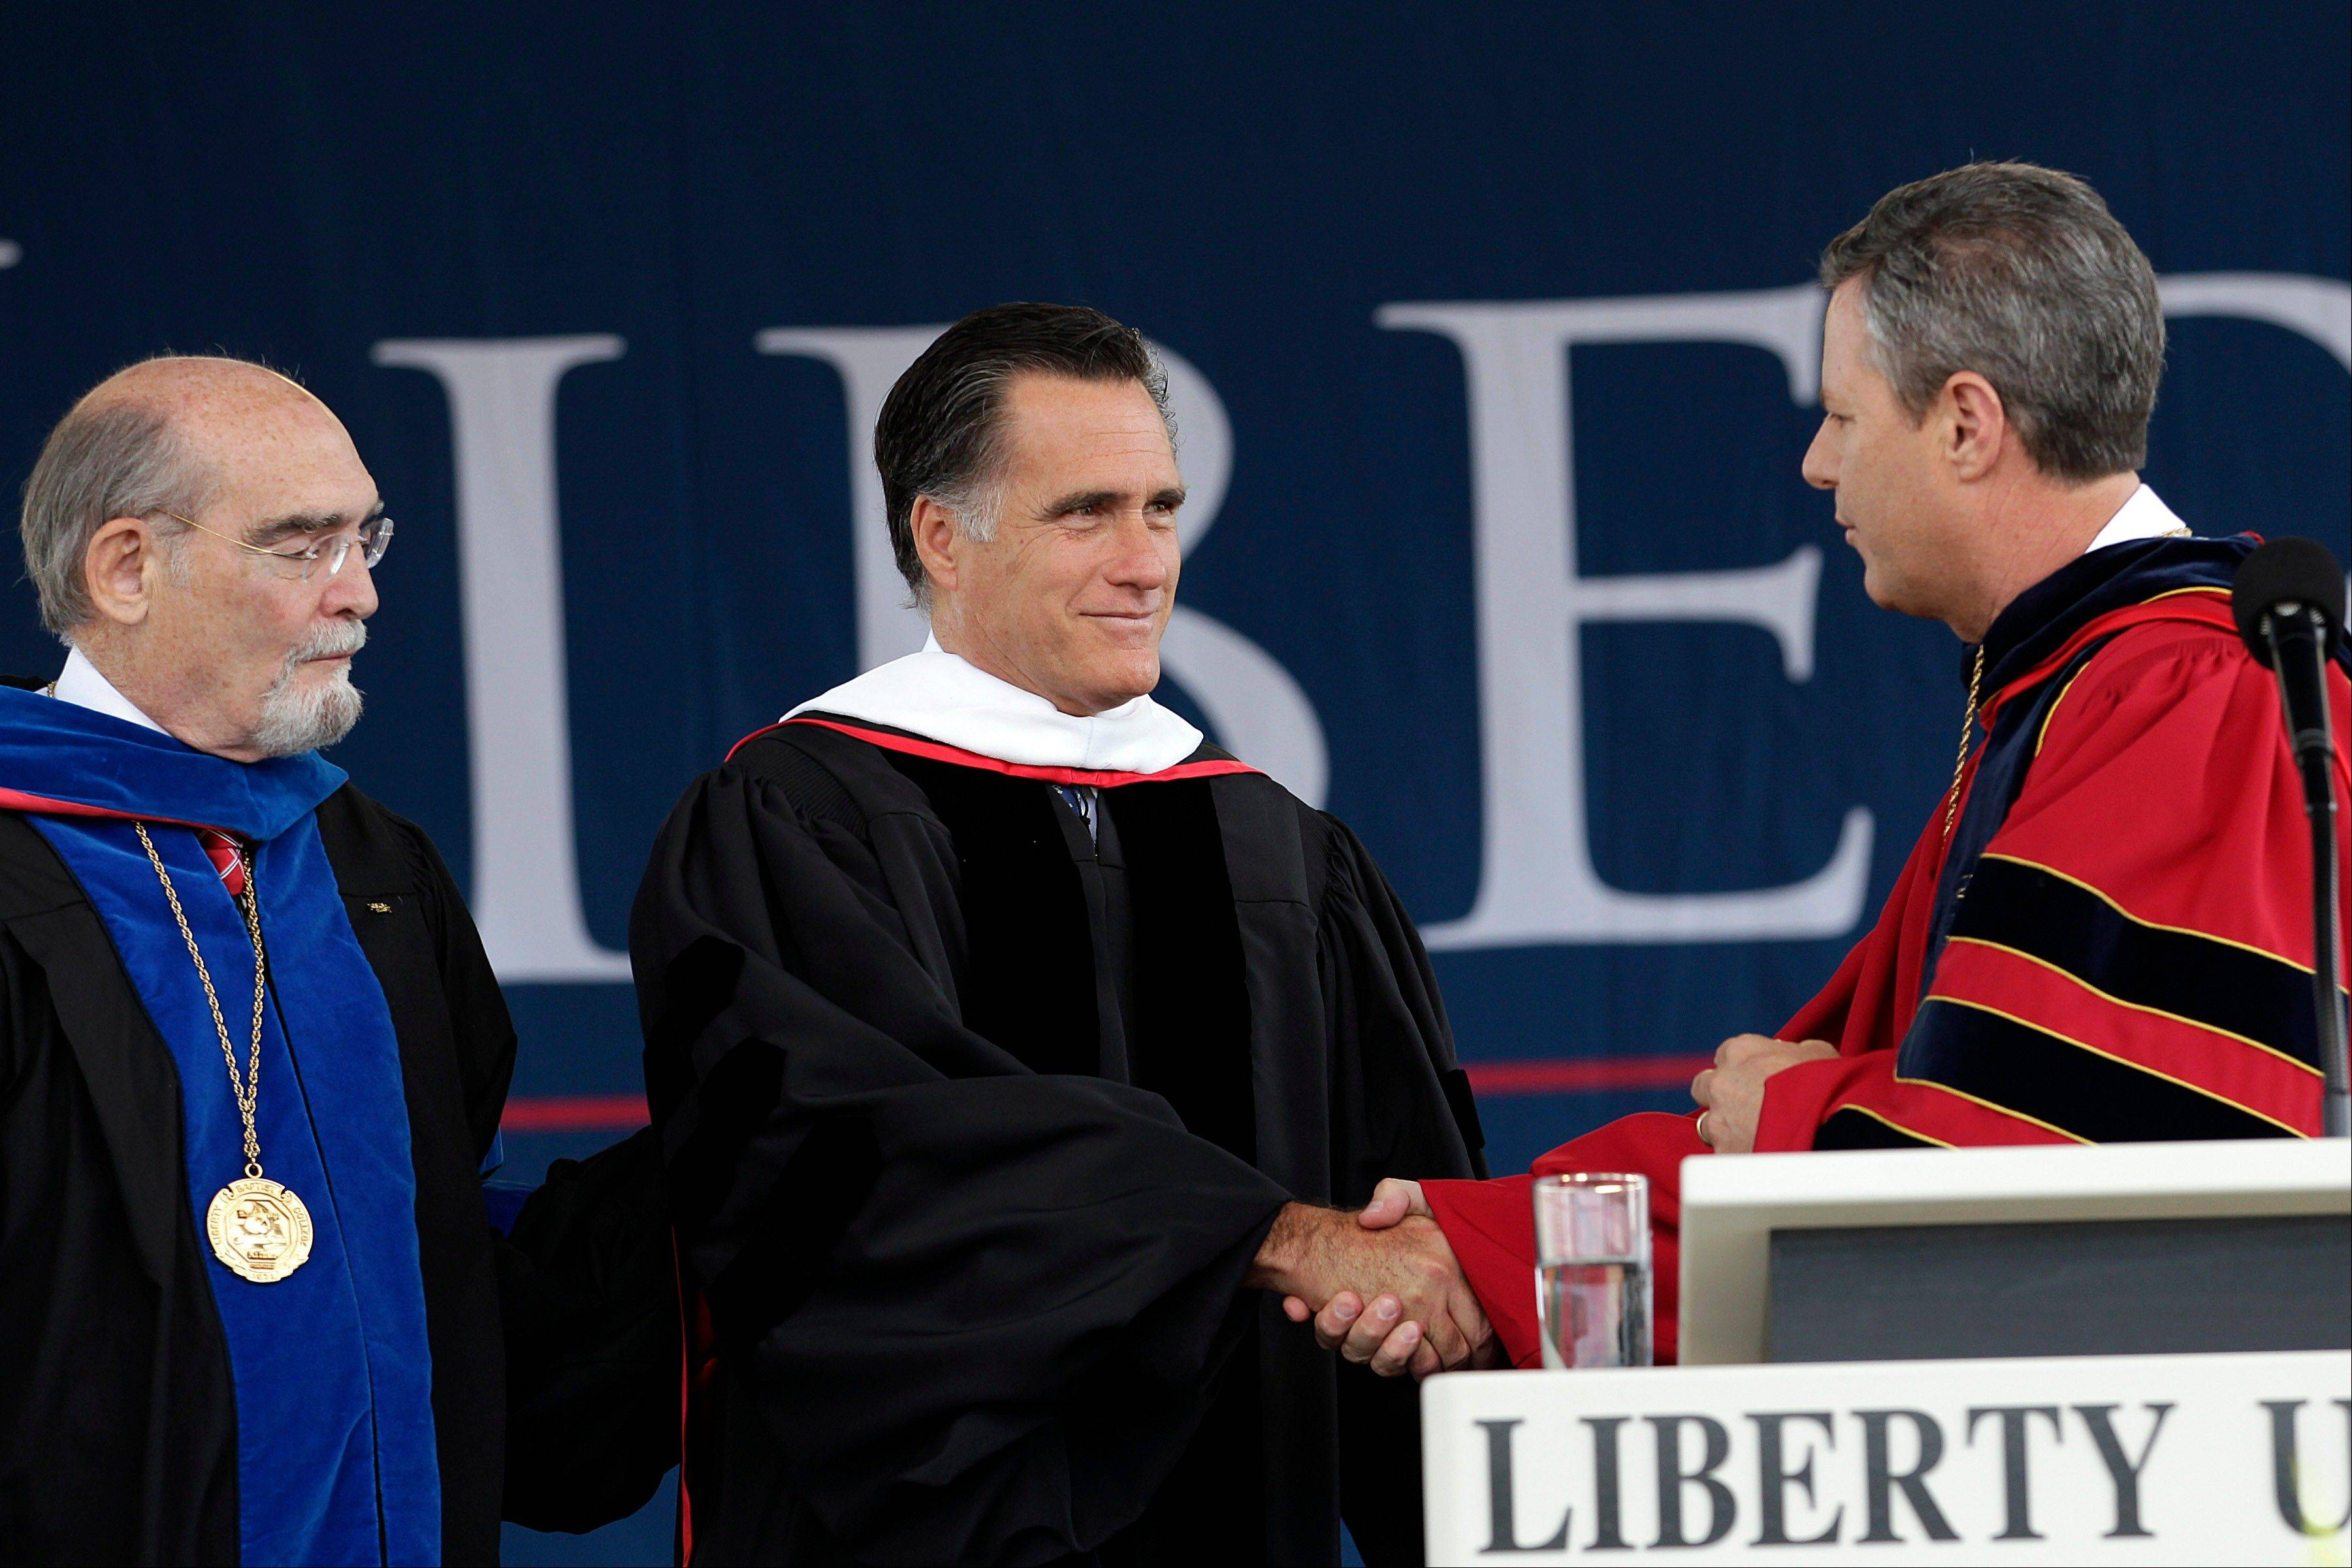 The U.S. Supreme Court has given new life to Liberty University�s challenge to President Barack Obama�s healthcare overhaul. Republican presidential candidate, former Massachusetts Gov. Mitt Romney, center, is seen here shaking hands with Jerry Falwell Jr., chancellor of Liberty University, before his commencement speech at the campus in Lynchburg, Va., May 12, 2012.